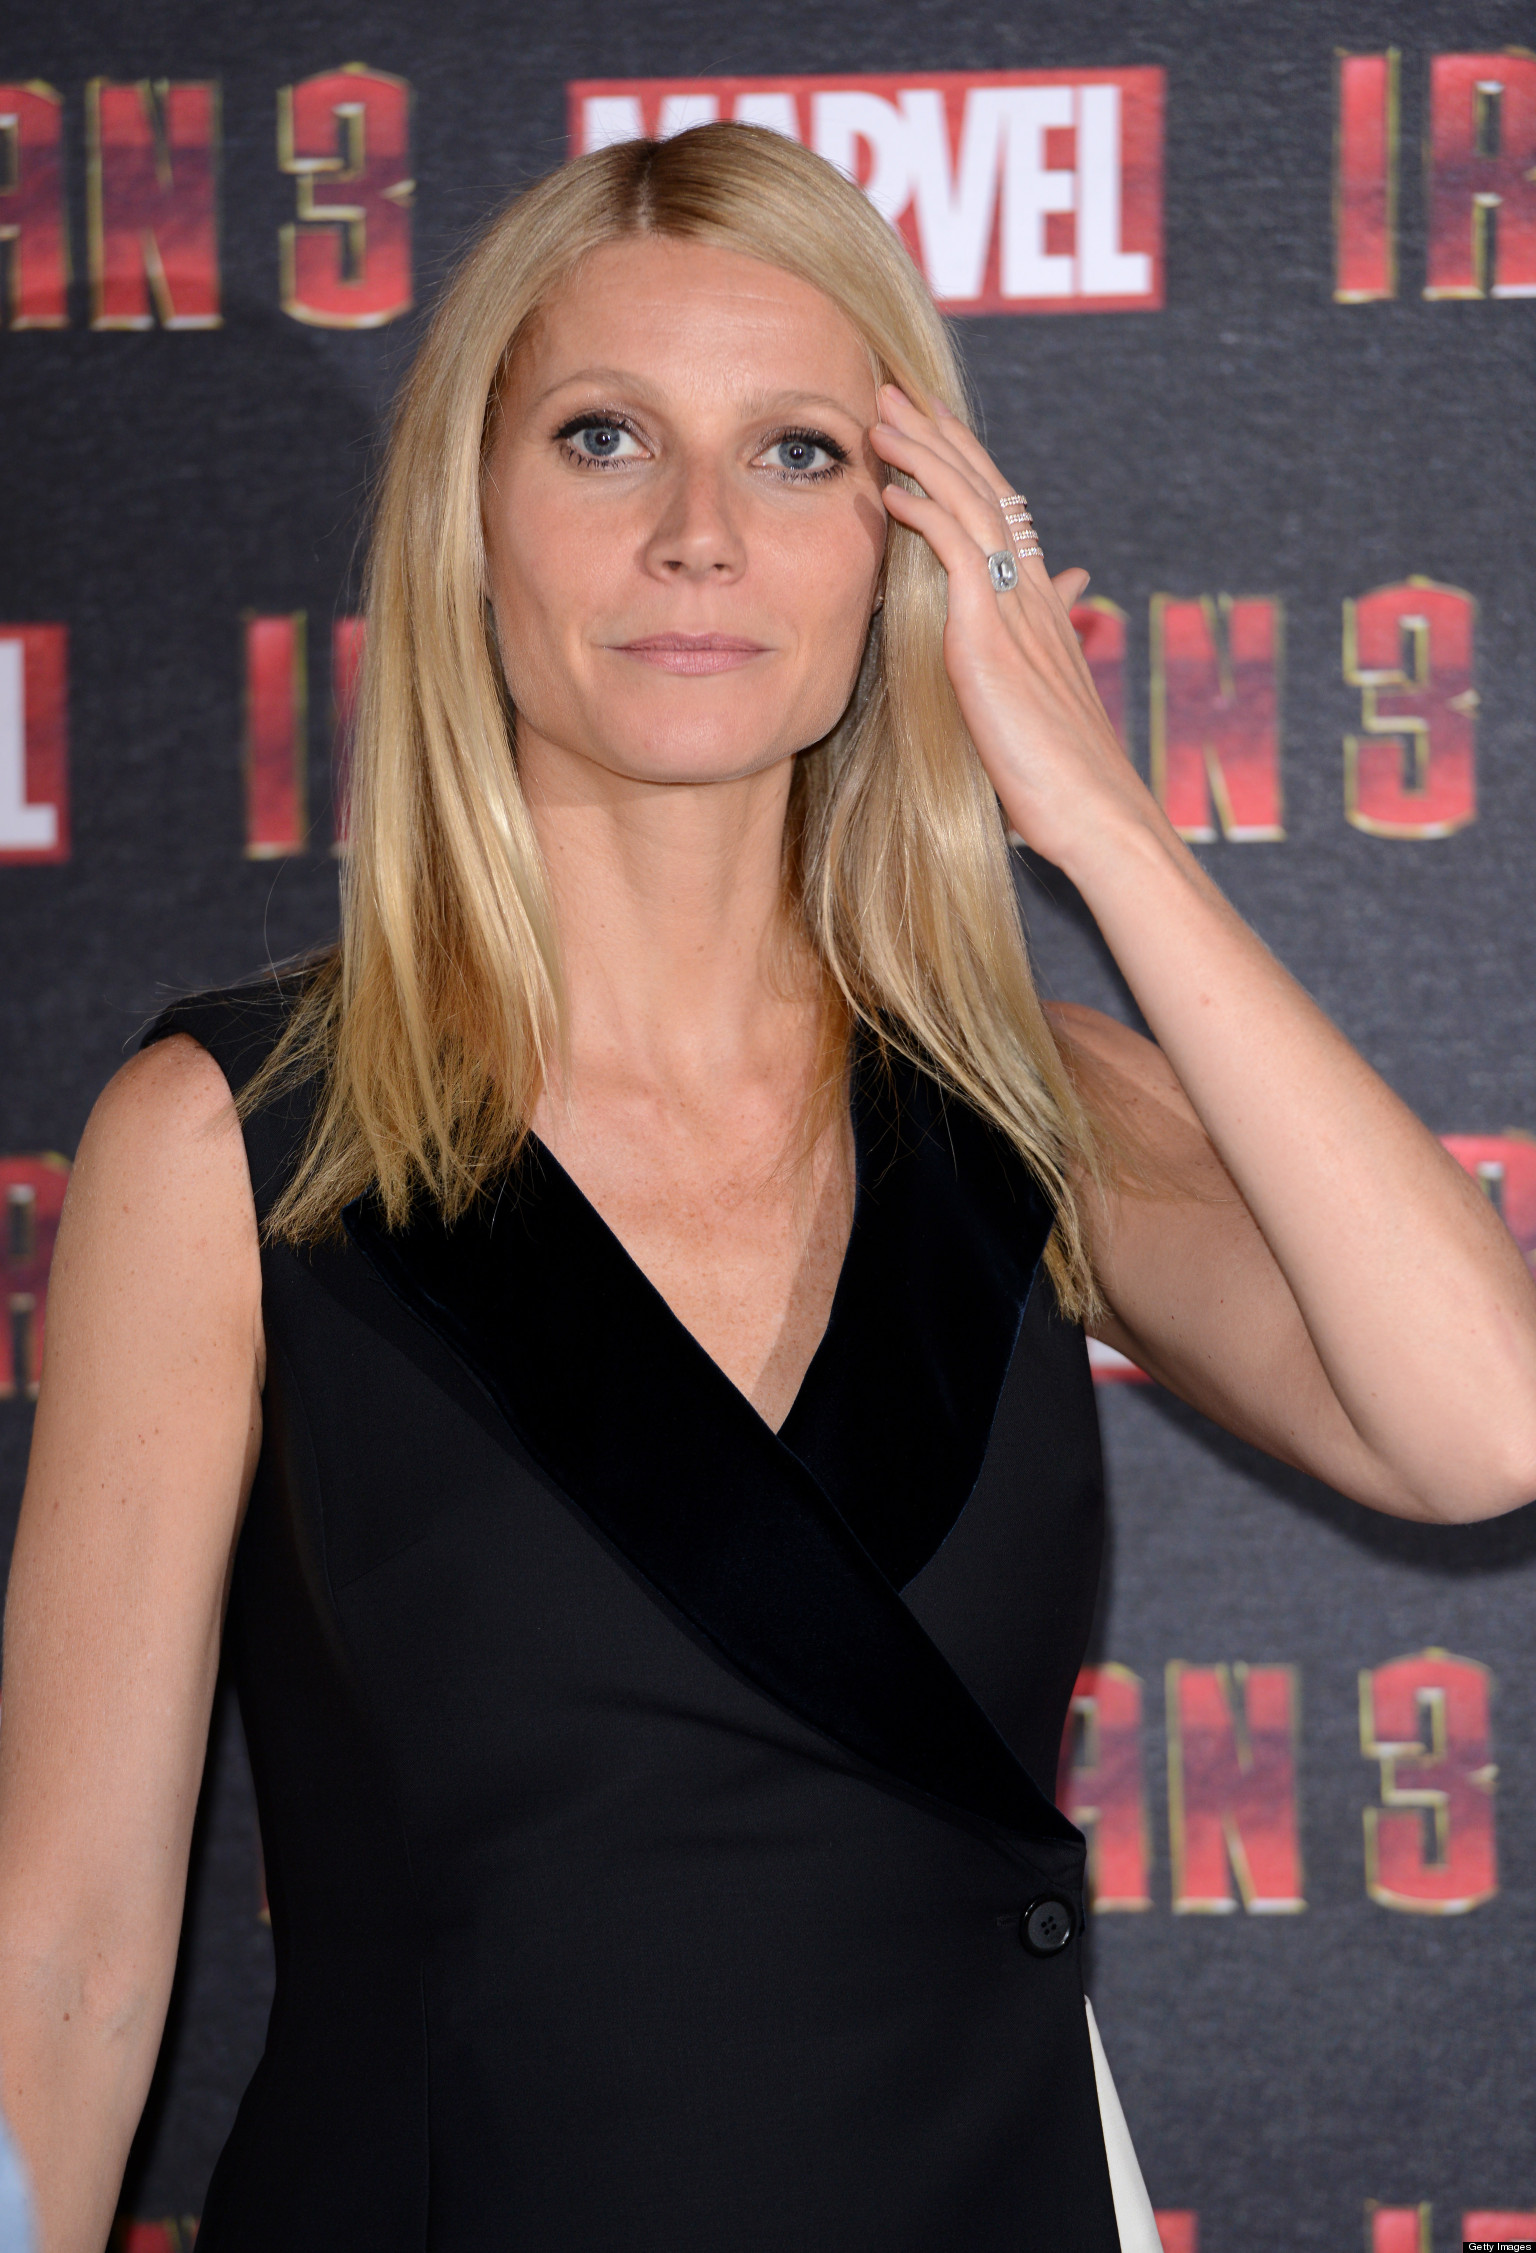 the most hated celebrity in hollywood is gwy h paltrow